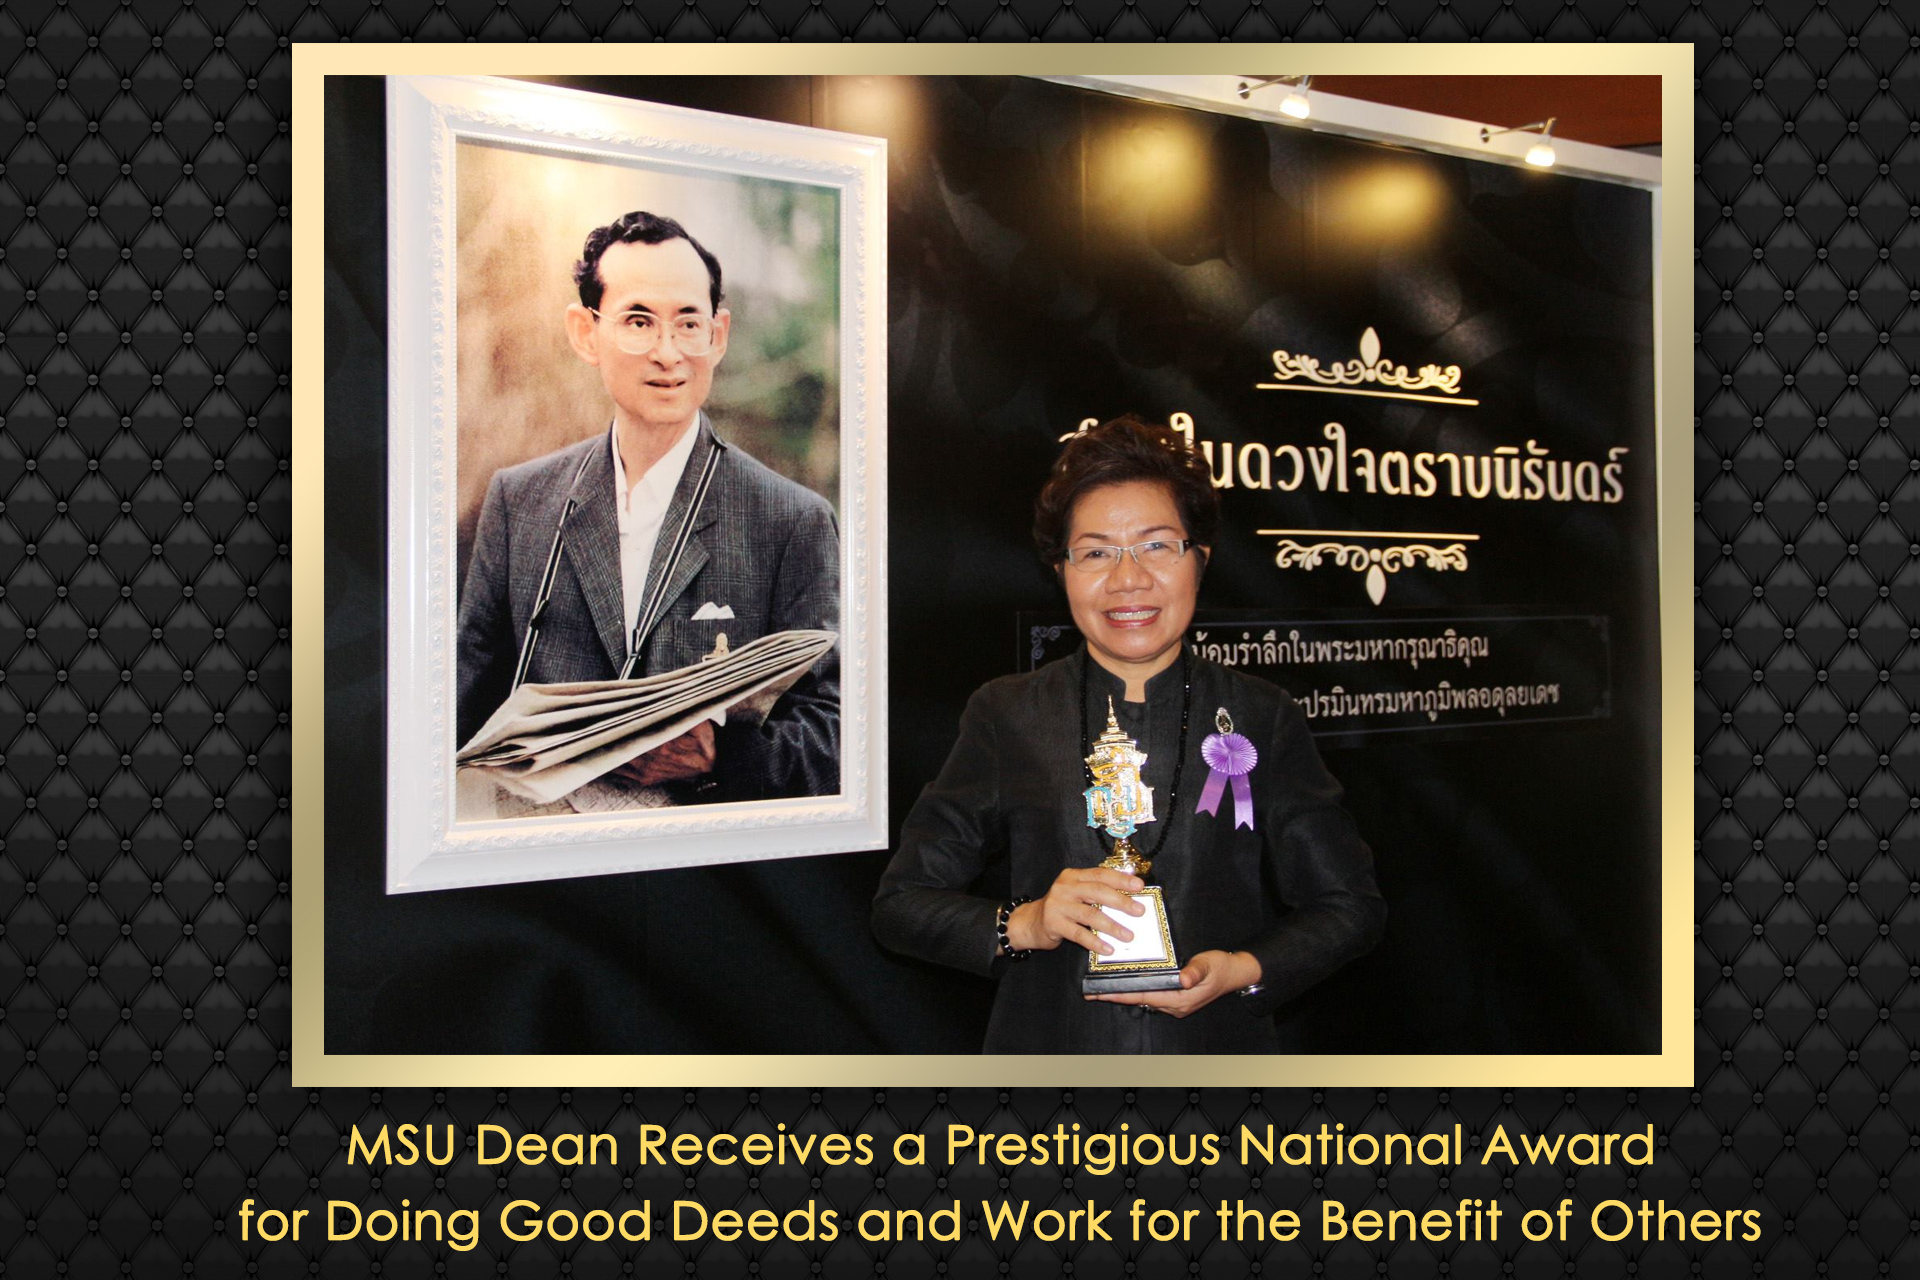 Research & News News Share 0 Display : Grid Time MSU Dean Receives a Prestigious National Award for Doing Good Deeds and Work for the Benefit of Others